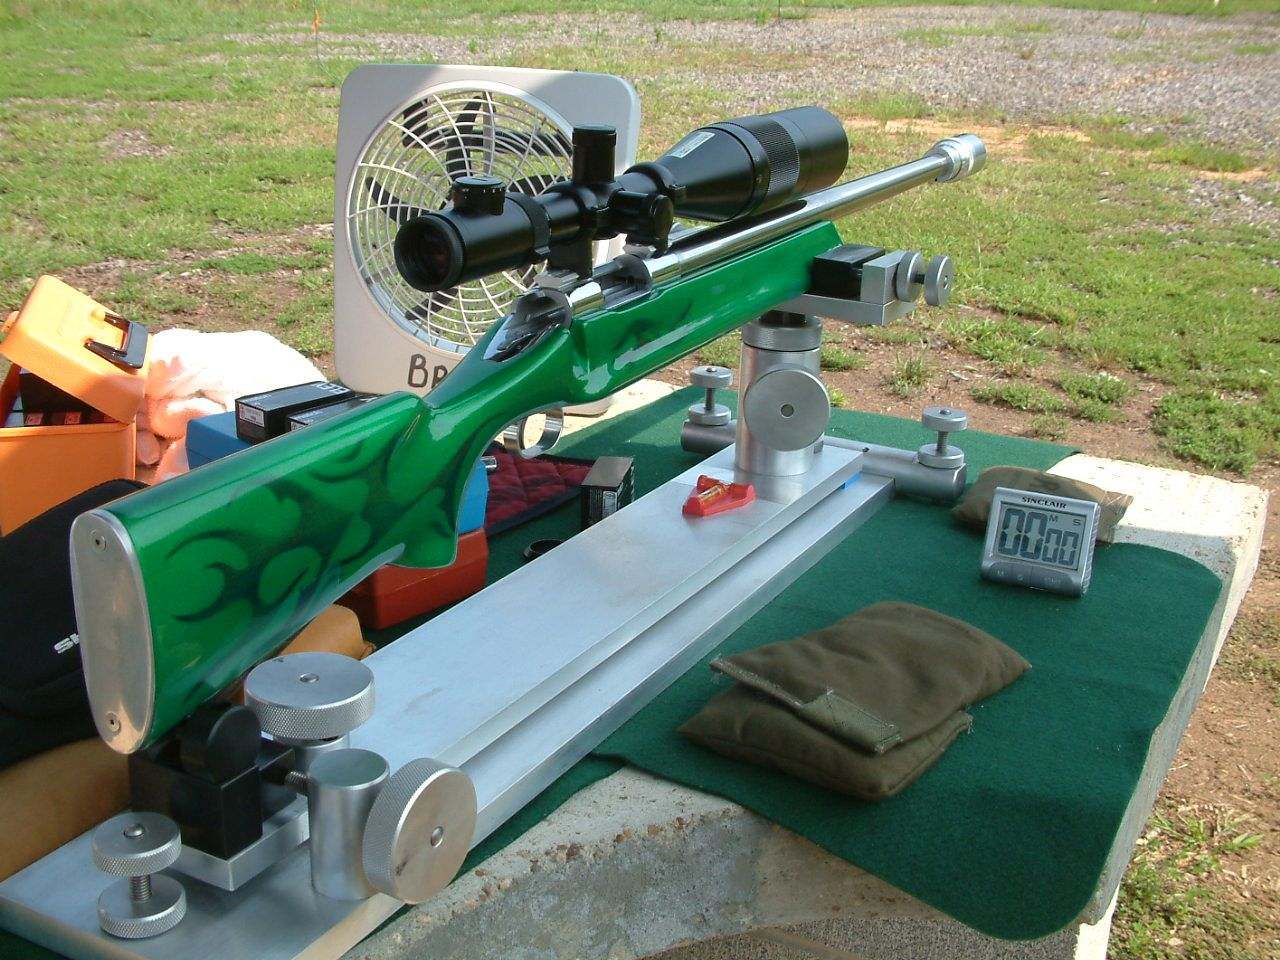 Benchrest Shooting Technique: Bench Rest And Very Important Things